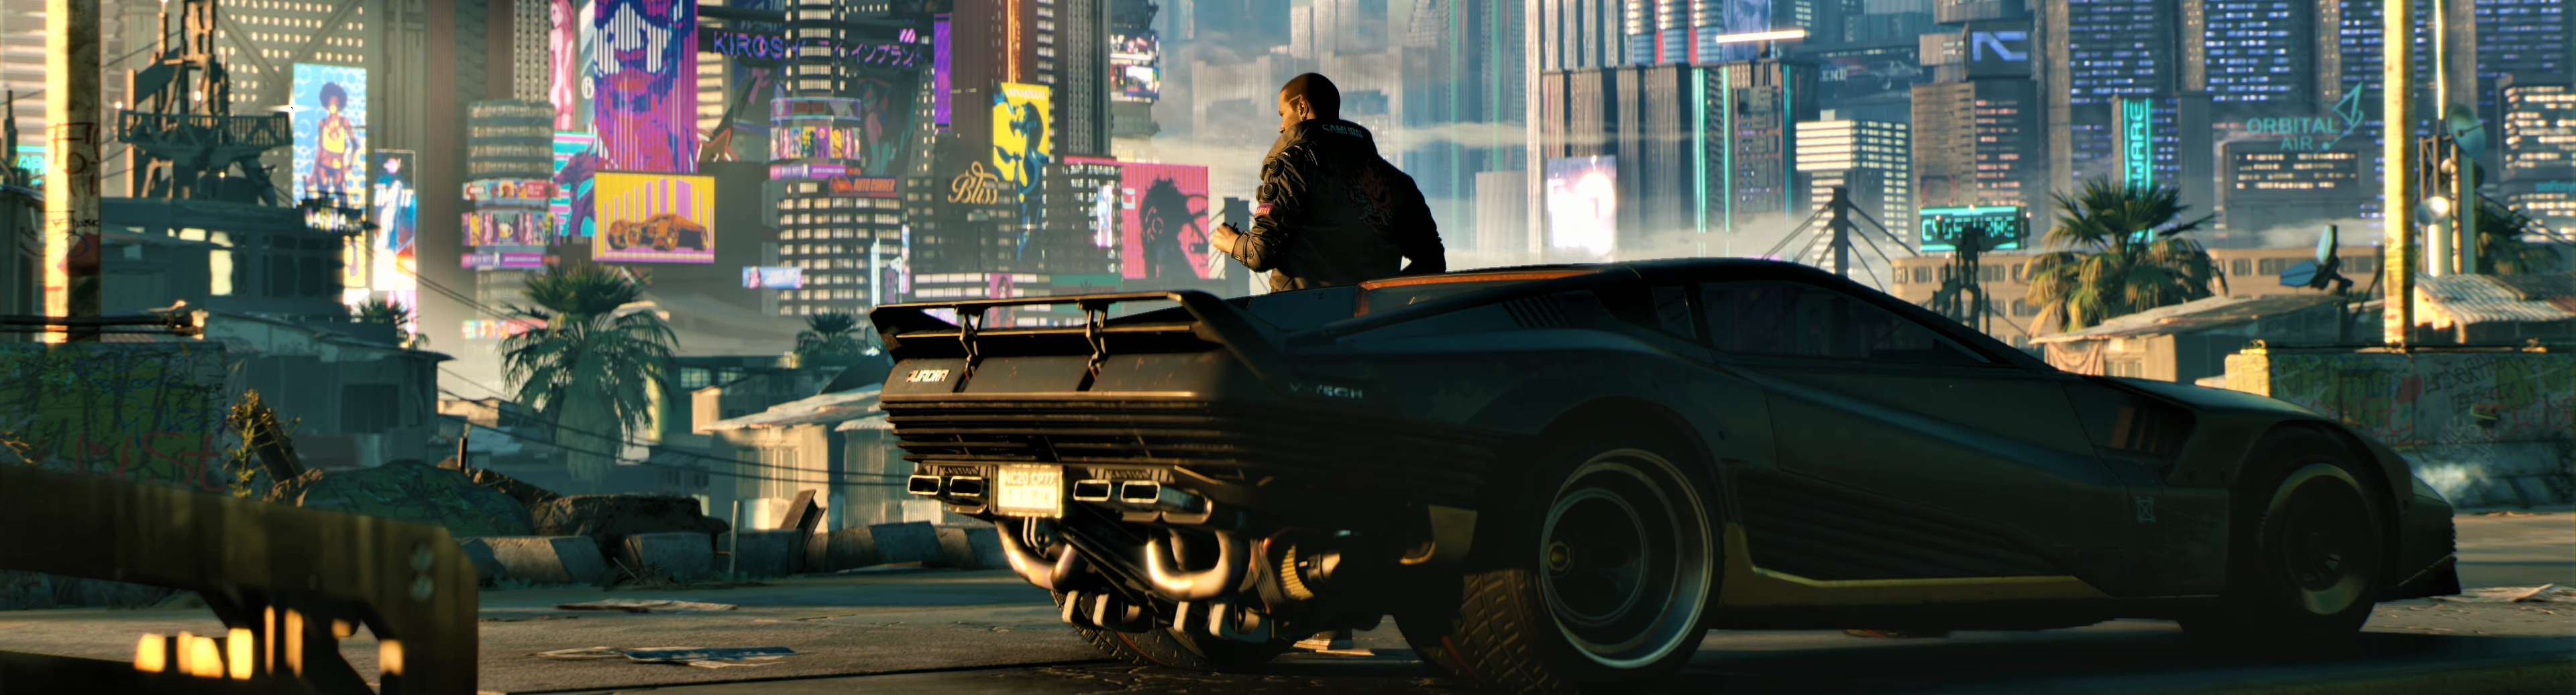 Game Of The Month - Goedkoopste Cyberpunk 2077